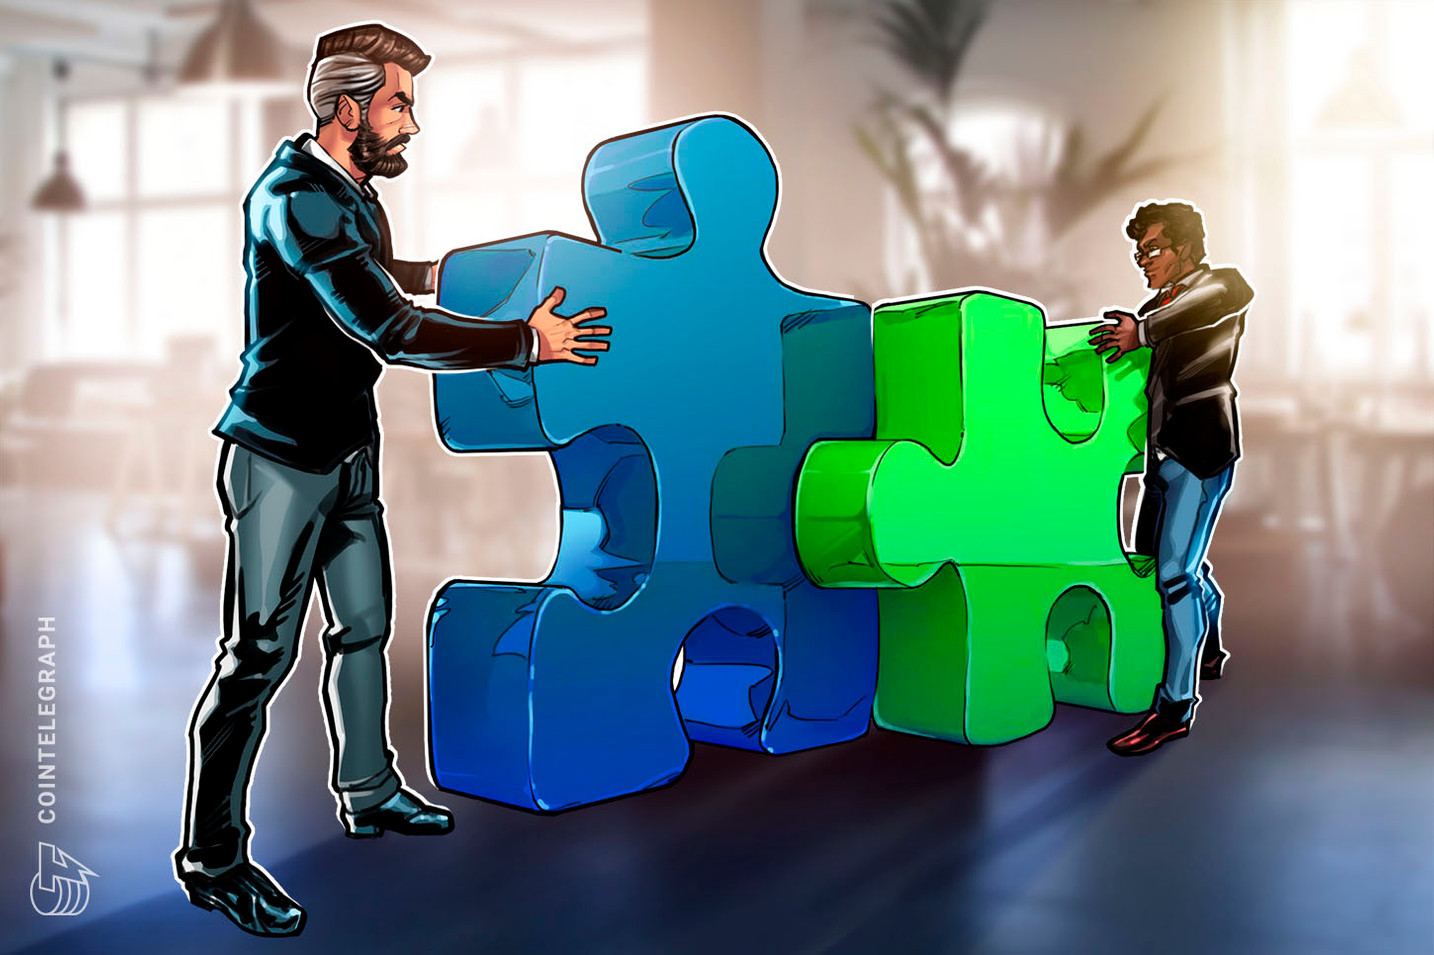 Japanese Finance Giant SBI Holdings, Blockchain Firm R3 Officially Announce Joint Venture